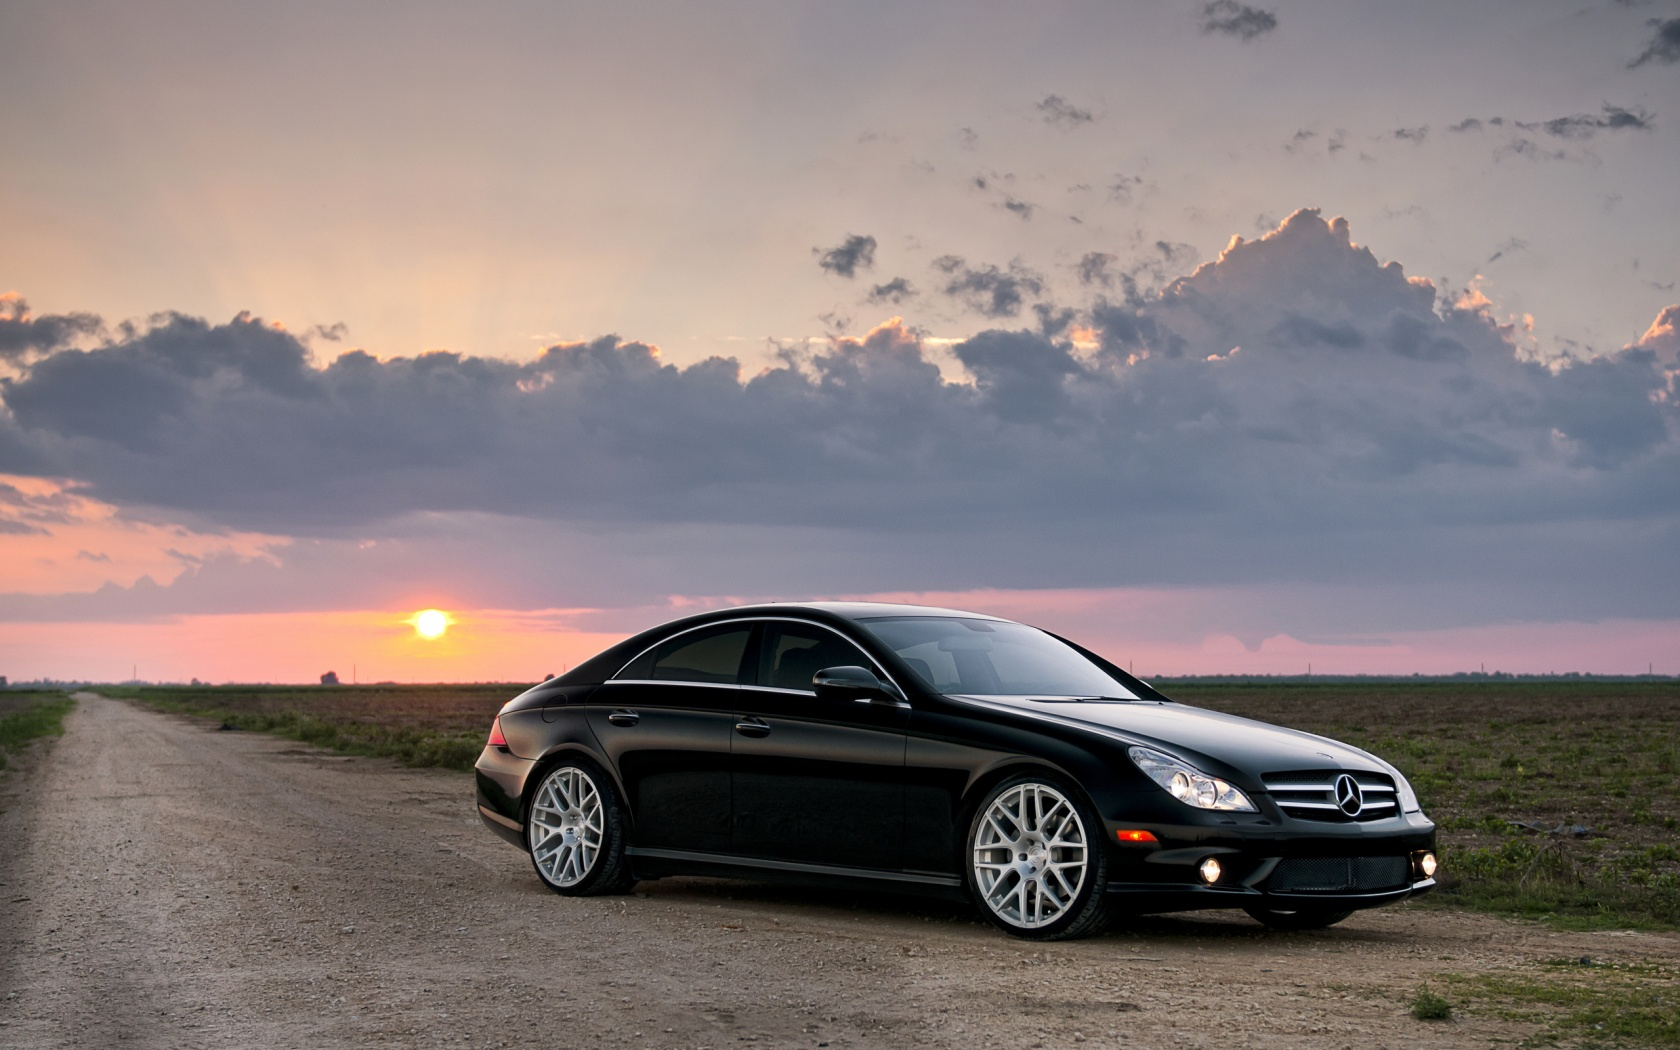 Adv 1 Mercedes Cls 550 Wallpapers 1680x1050 448143